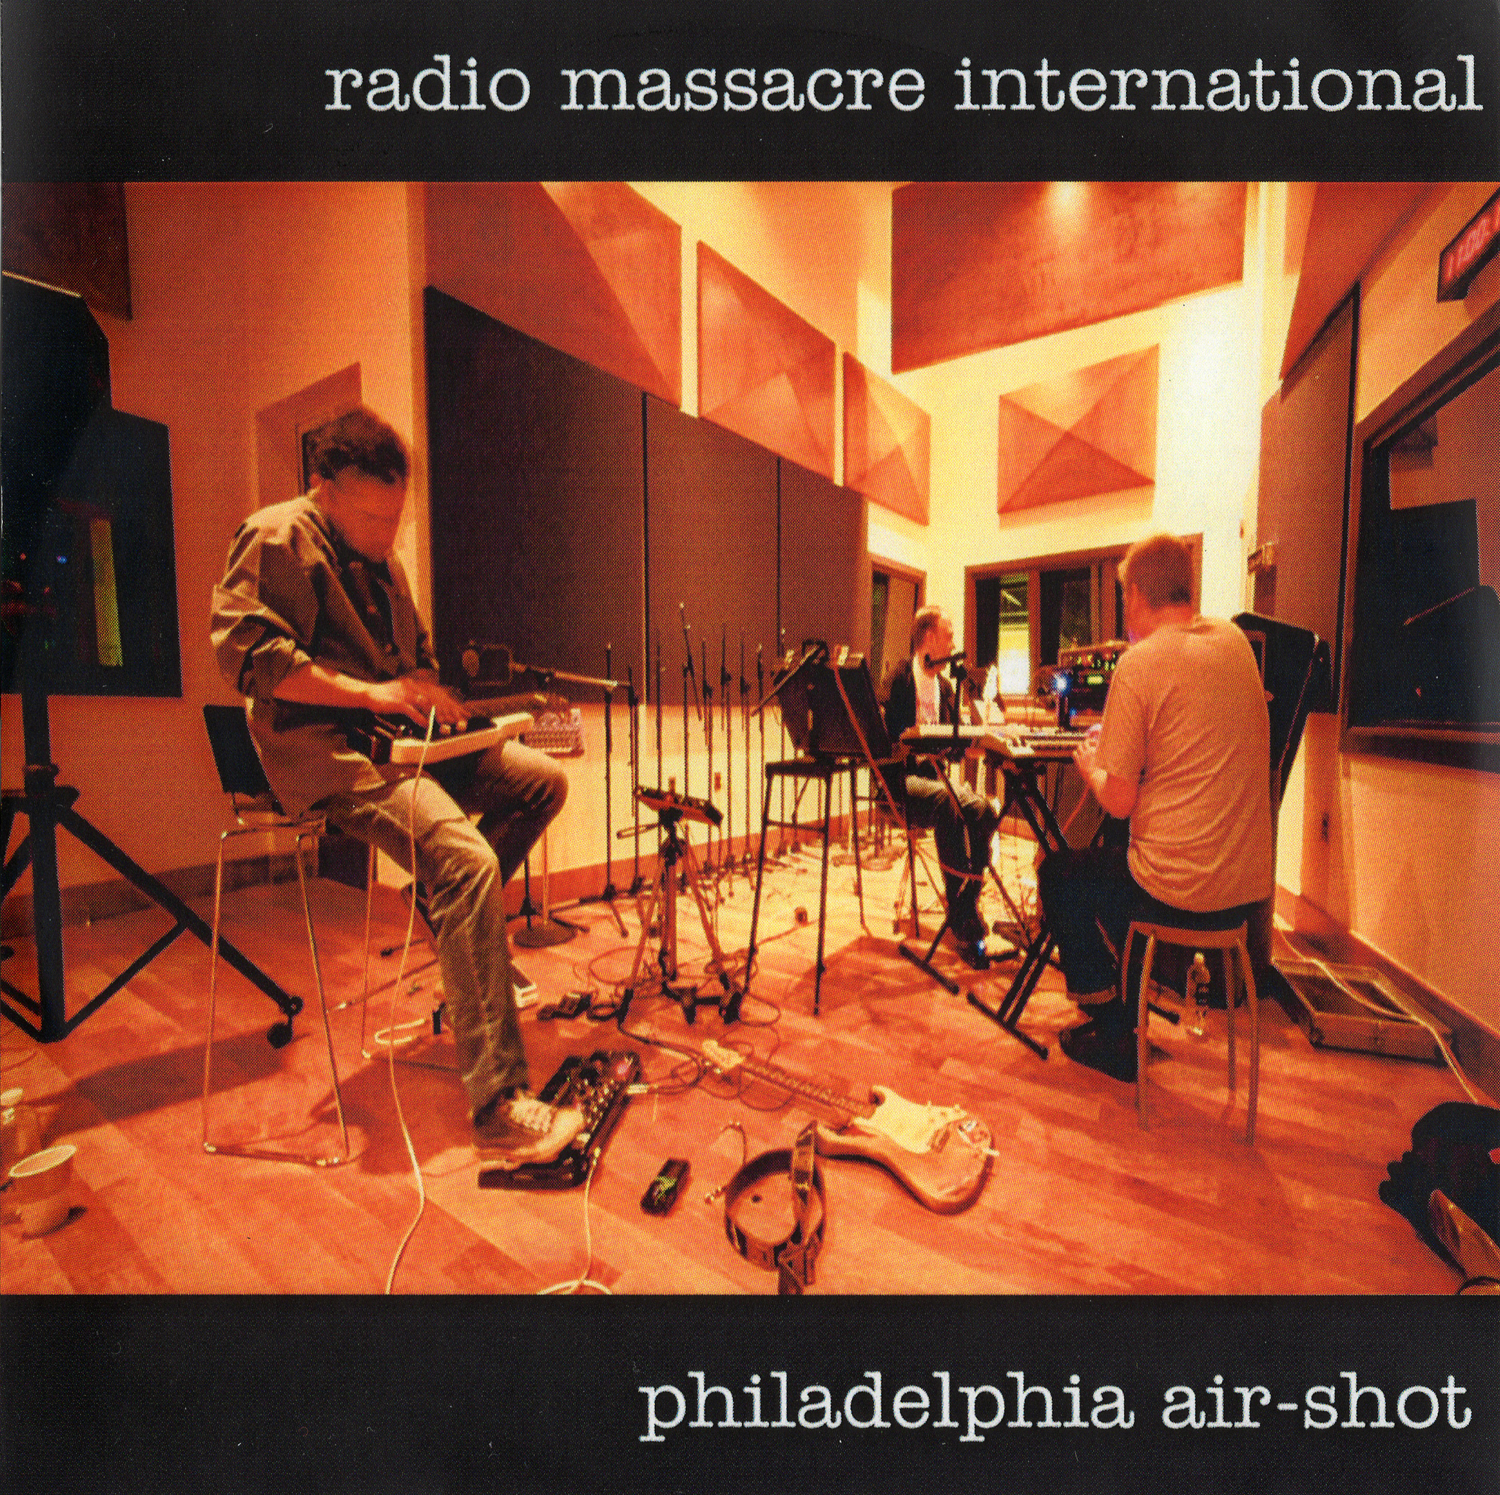 philadelphia air-shot